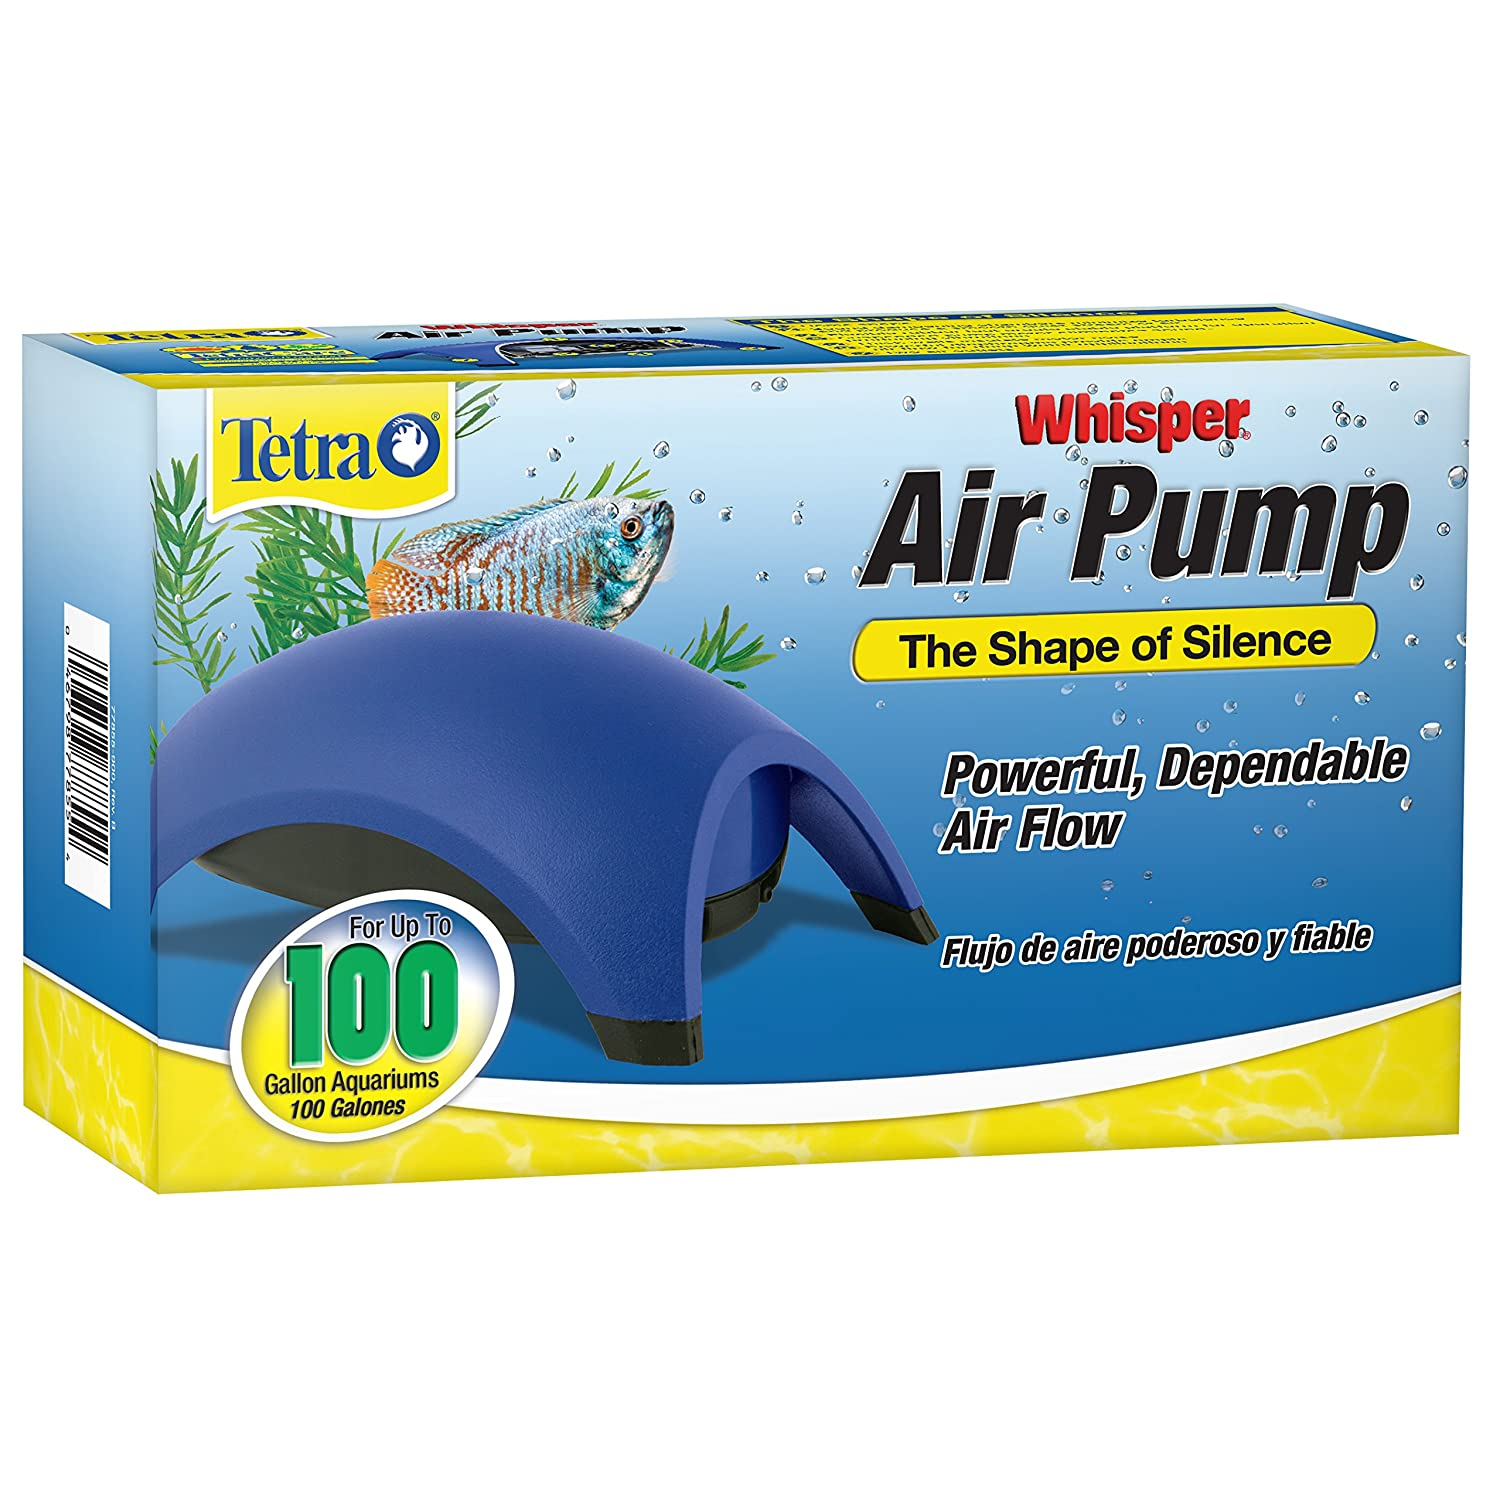 919Nc0VheXL._SL1500_ amazon com tetra 77855 whisper air pump, 100 gallon aquarium  at mifinder.co